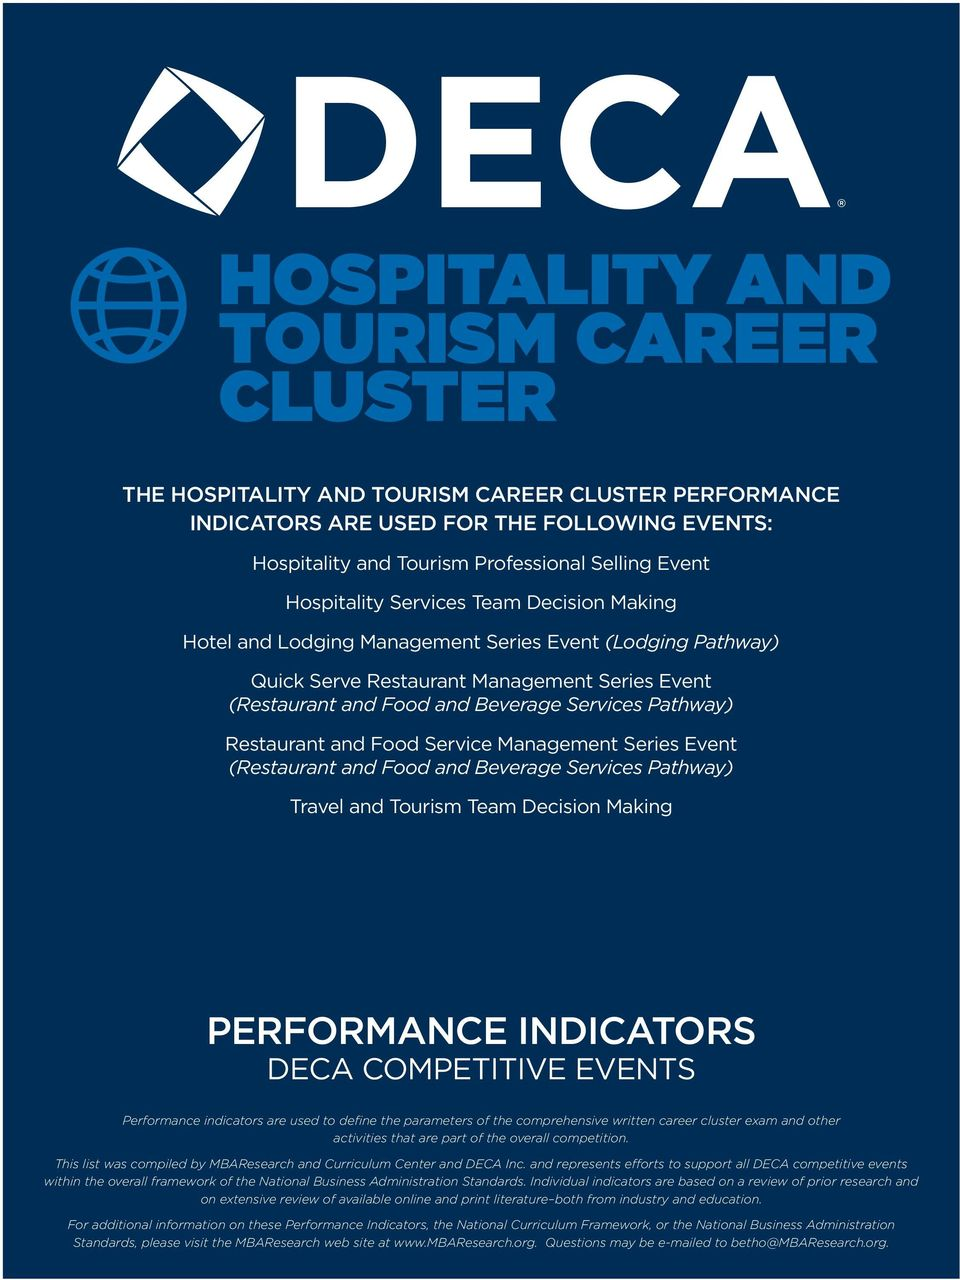 Pathway) Restaurant and Food Service Management Series Event (Restaurant and Food and Beverage Services Pathway) Travel and Tourism Team Decision Making PERFORMANCE INDICATORS DECA COMPETITIVE EVENTS